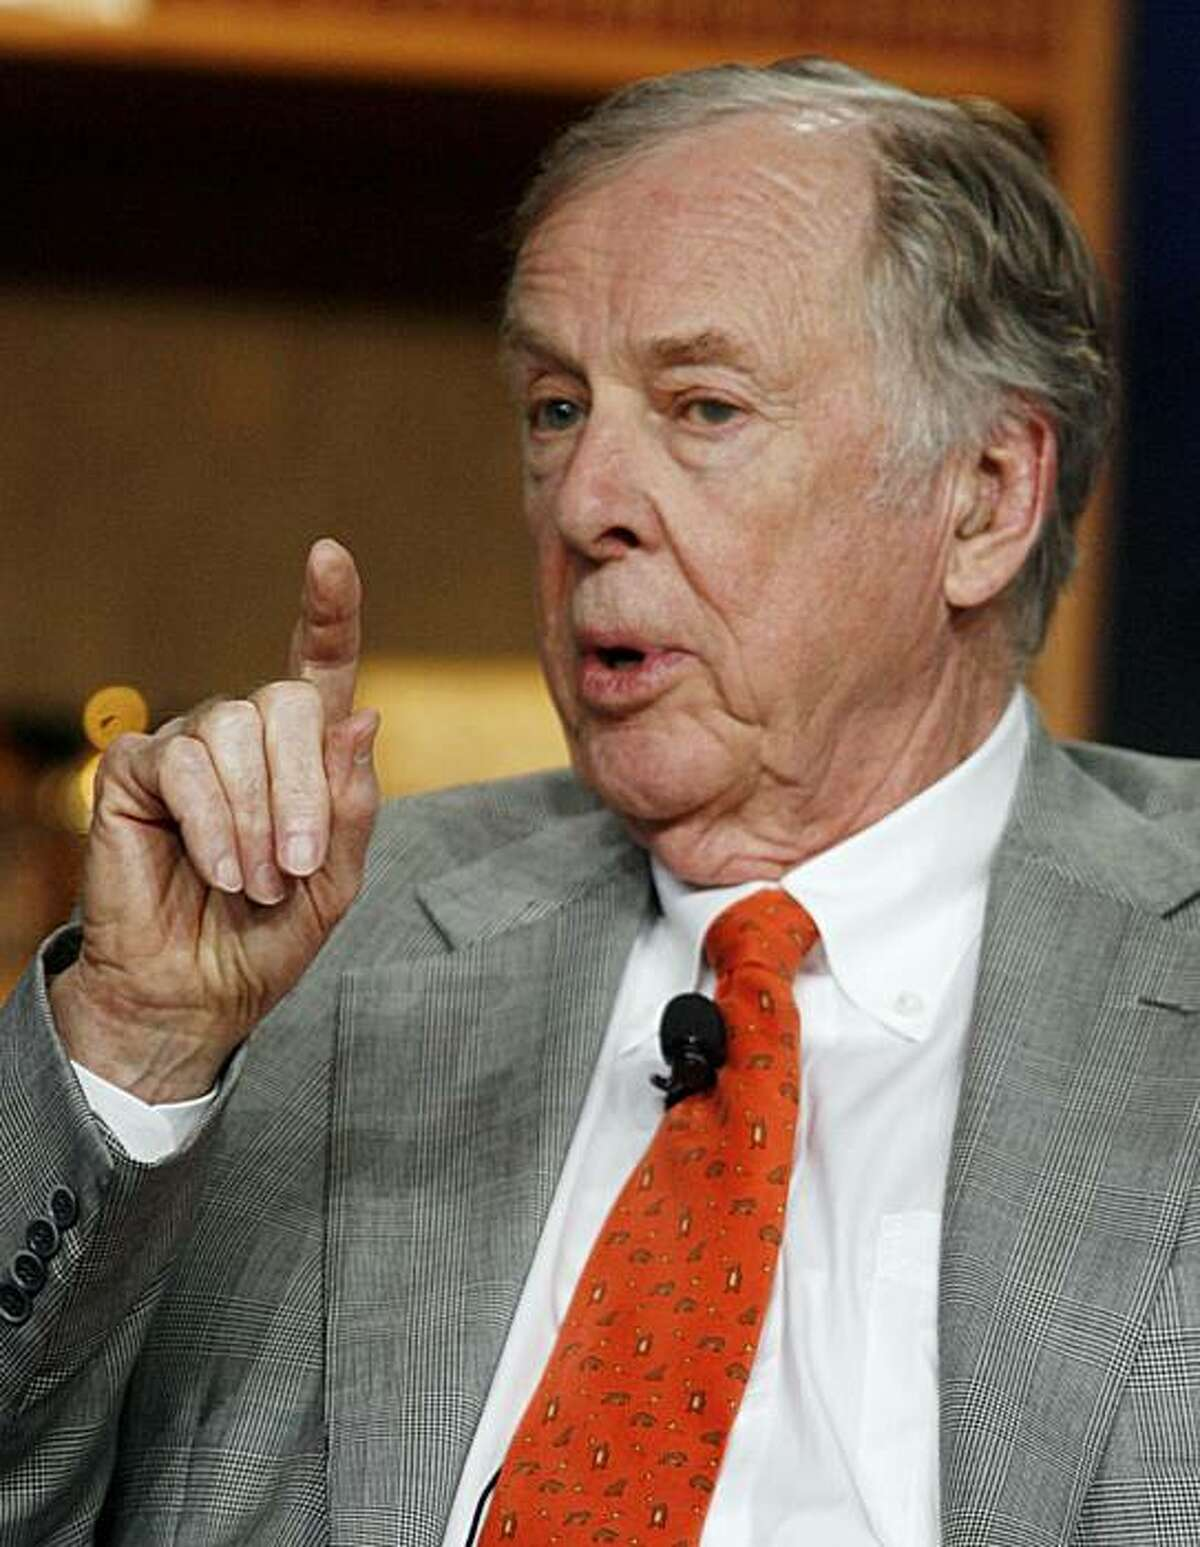 Boone Pickens, philanthropist and founder of BP Capital speaks during a panel titled